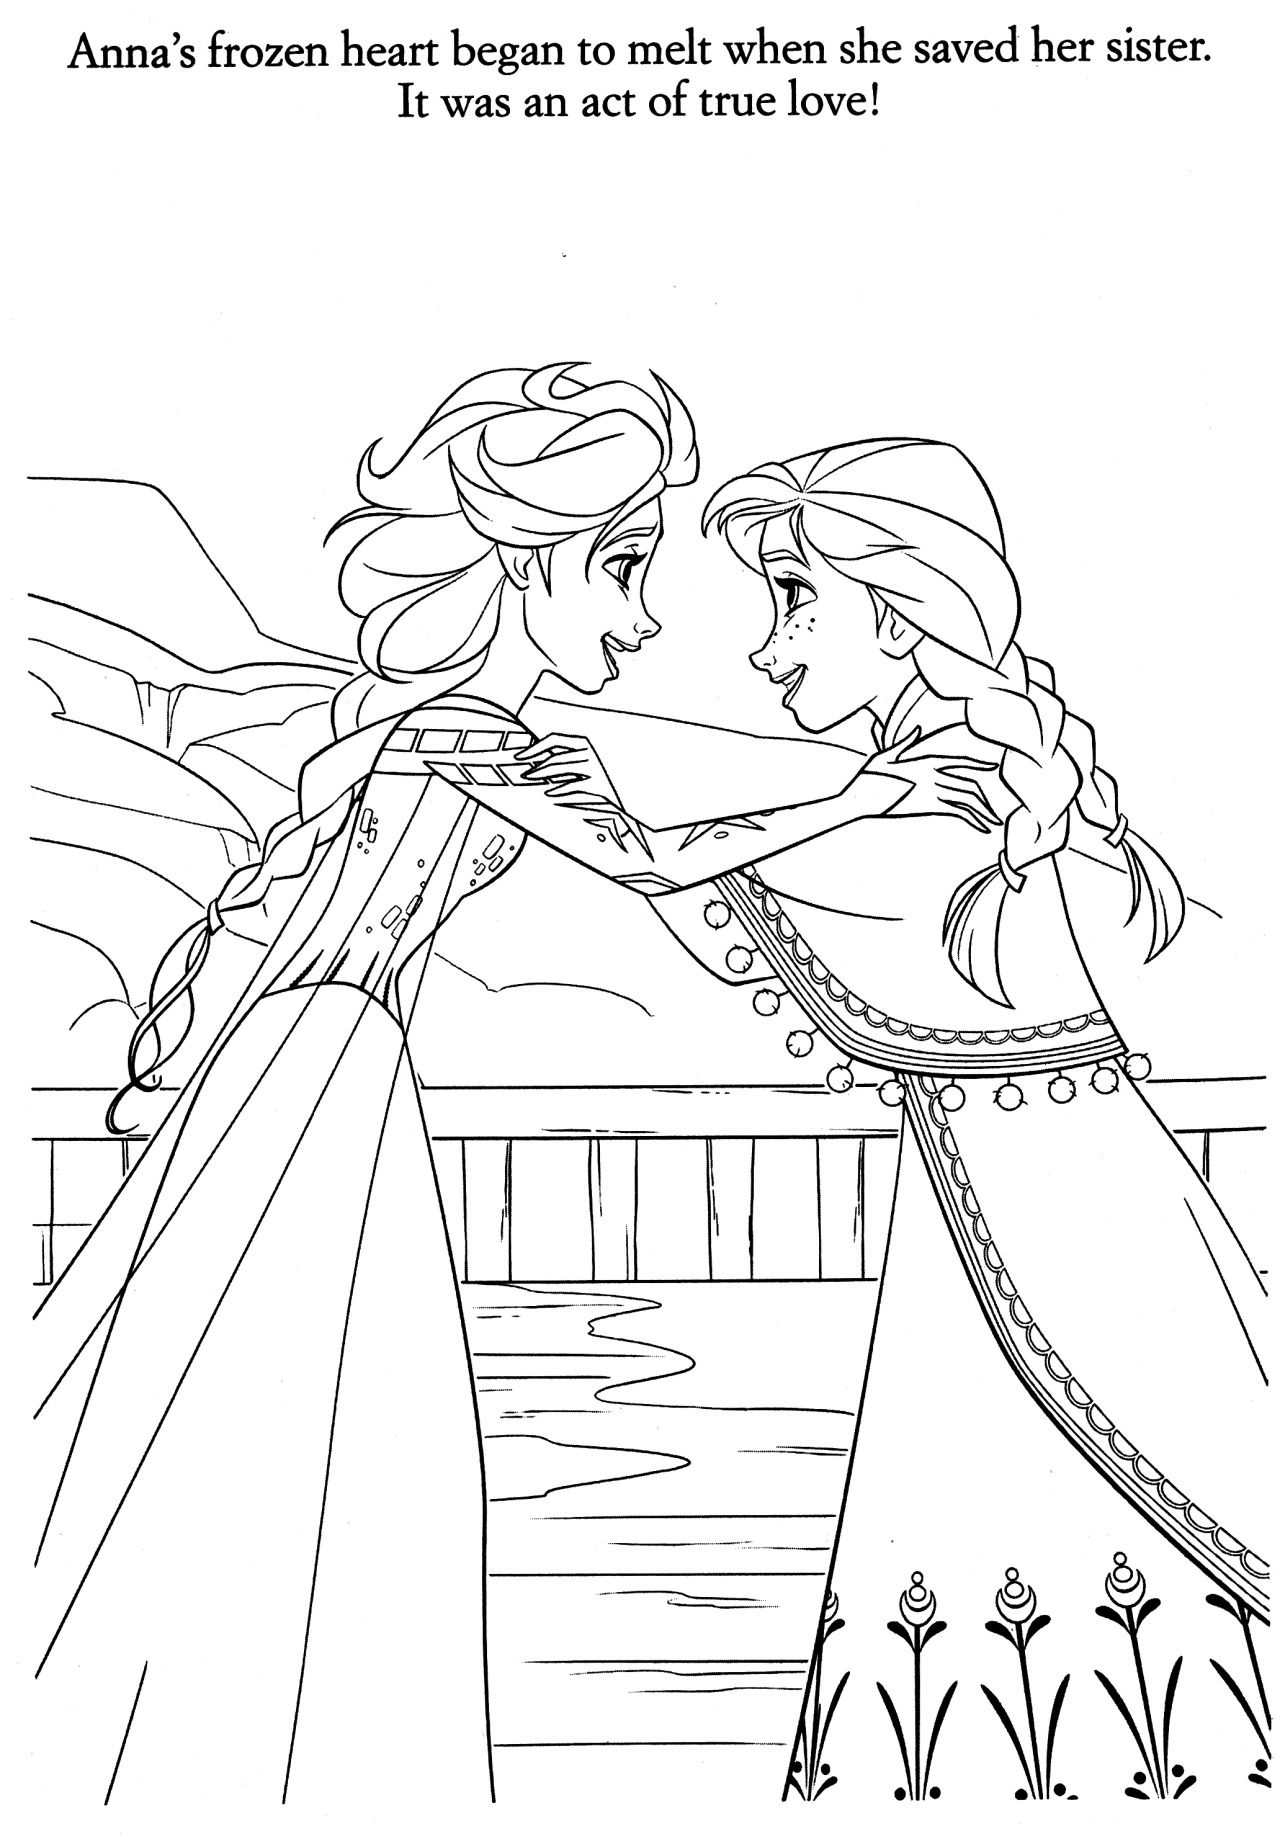 Elsa and Anna coloring page (Frozen).